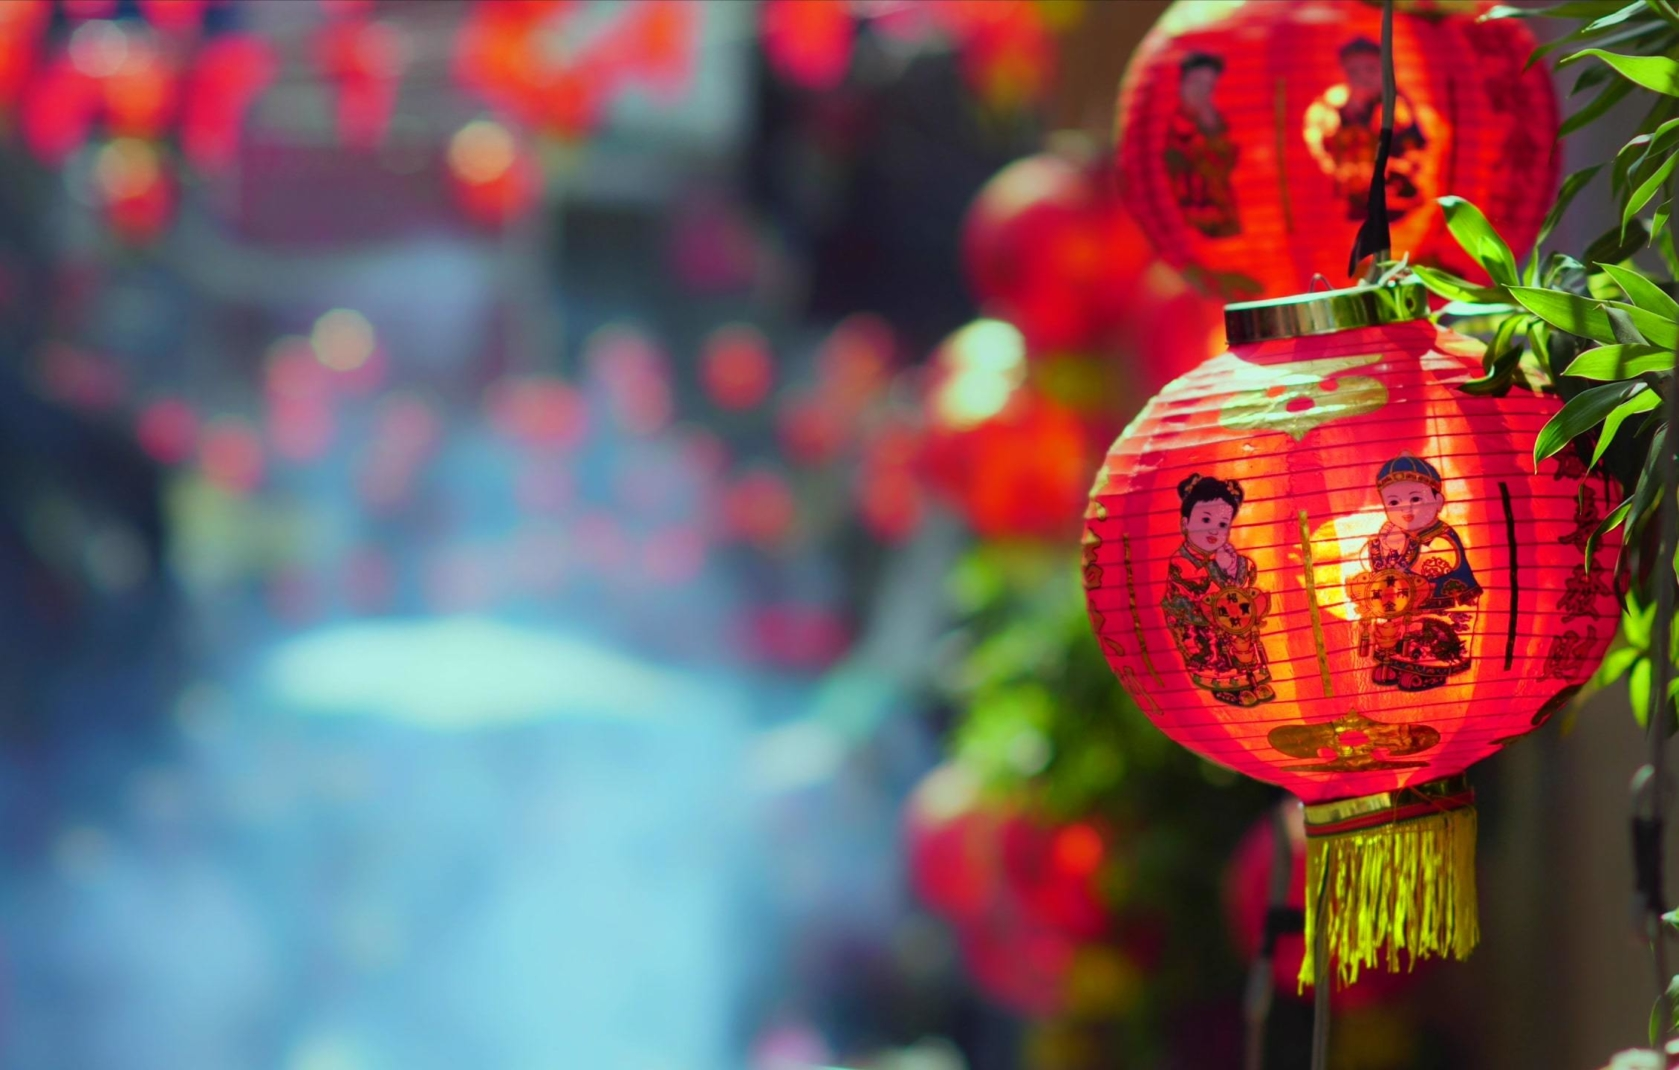 S M Ong: Let's cancel Chinese New Year, posted on Sunday, 31 January 2021